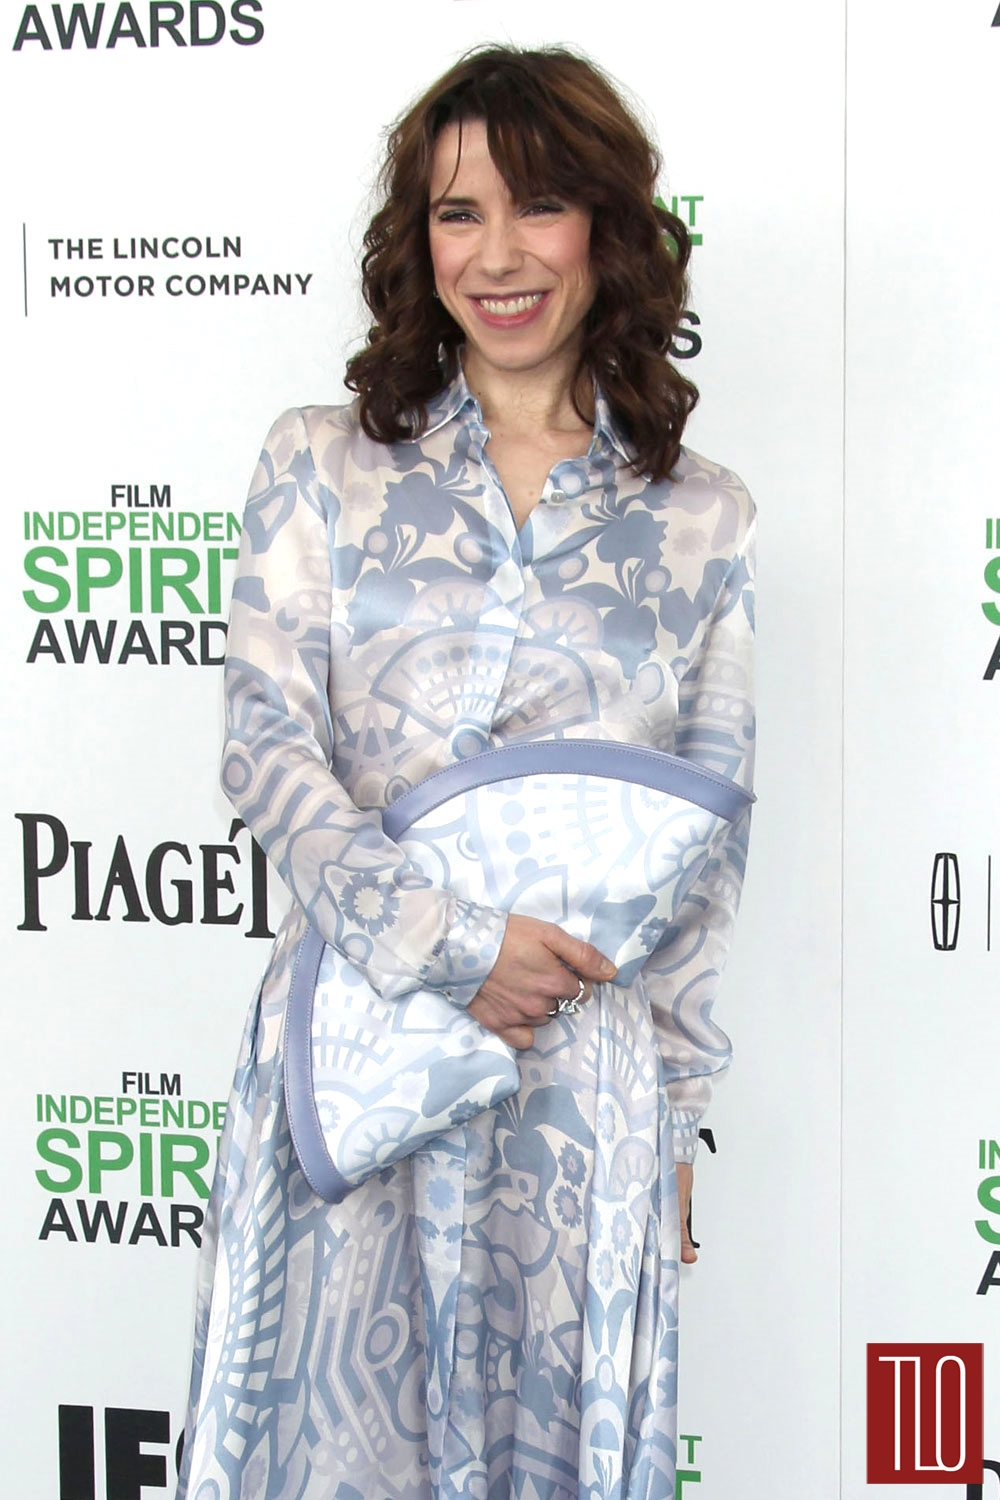 Sally-Hawkins-2014-Film-Independent-Spirits-Awards-Tom-Lorenzo-Site-TLO (1)